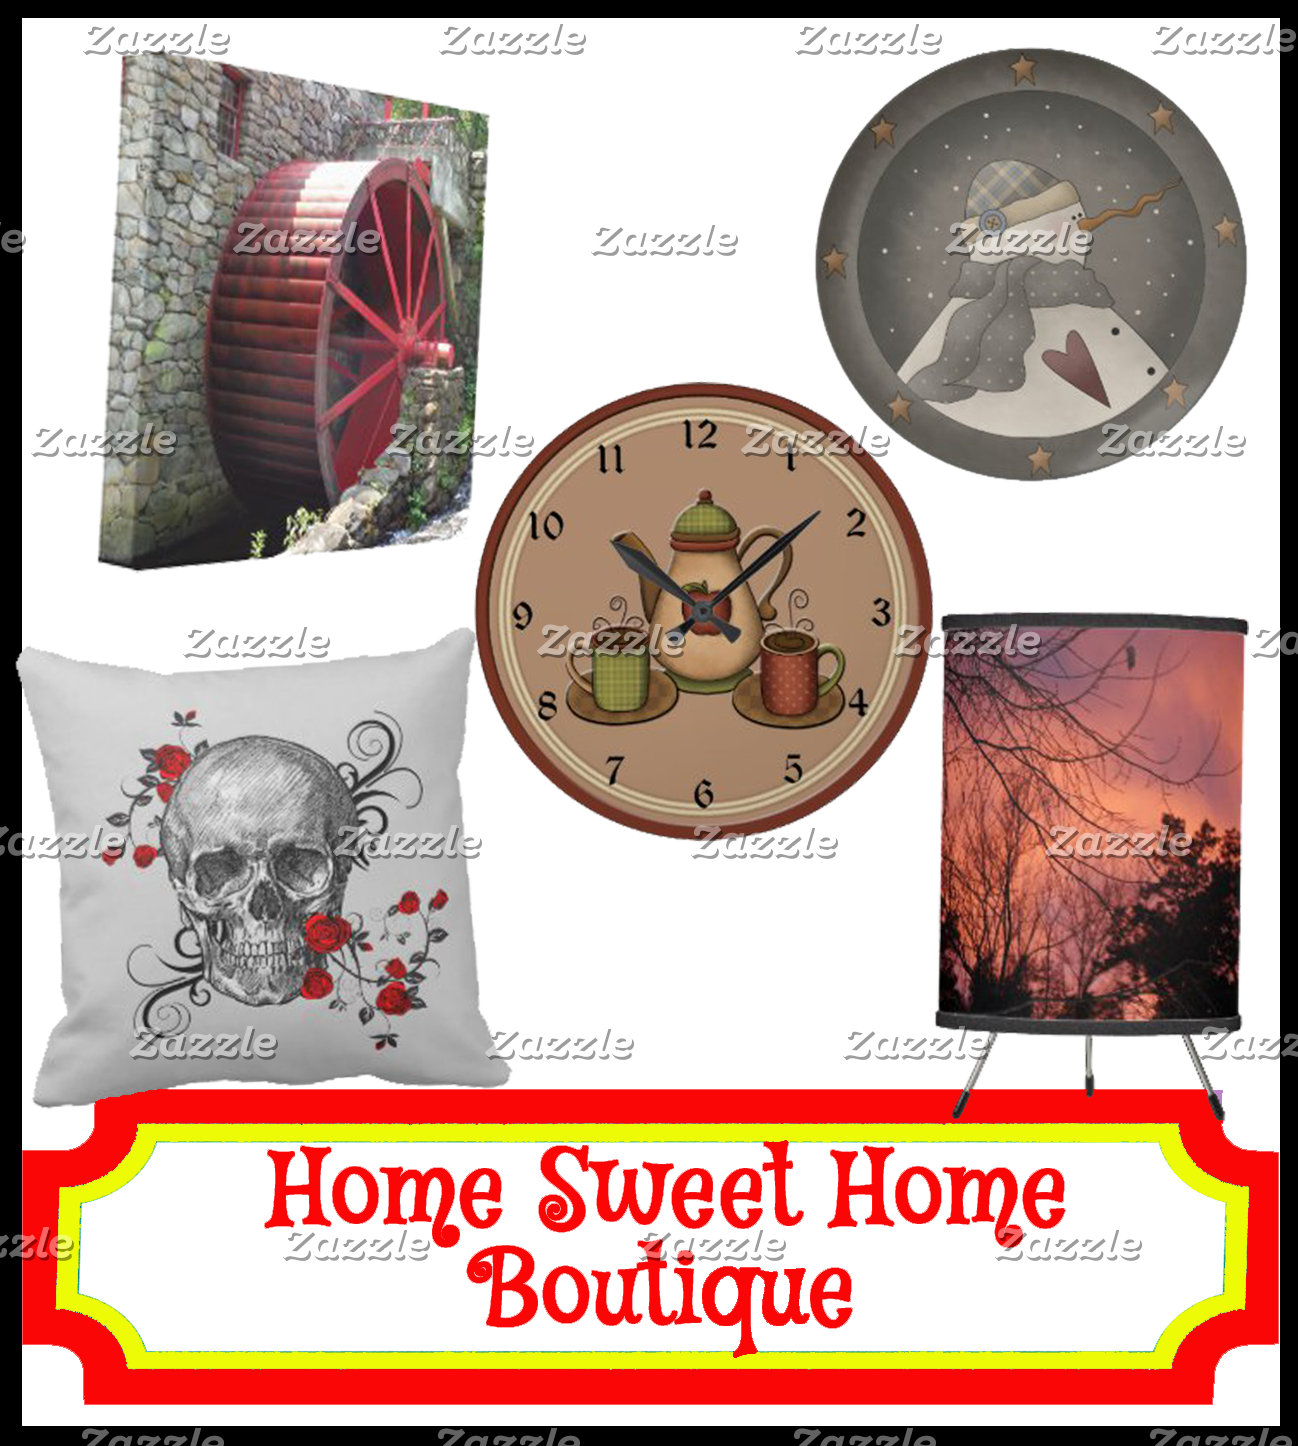 HOME SWEET HOME BOUTIQUE